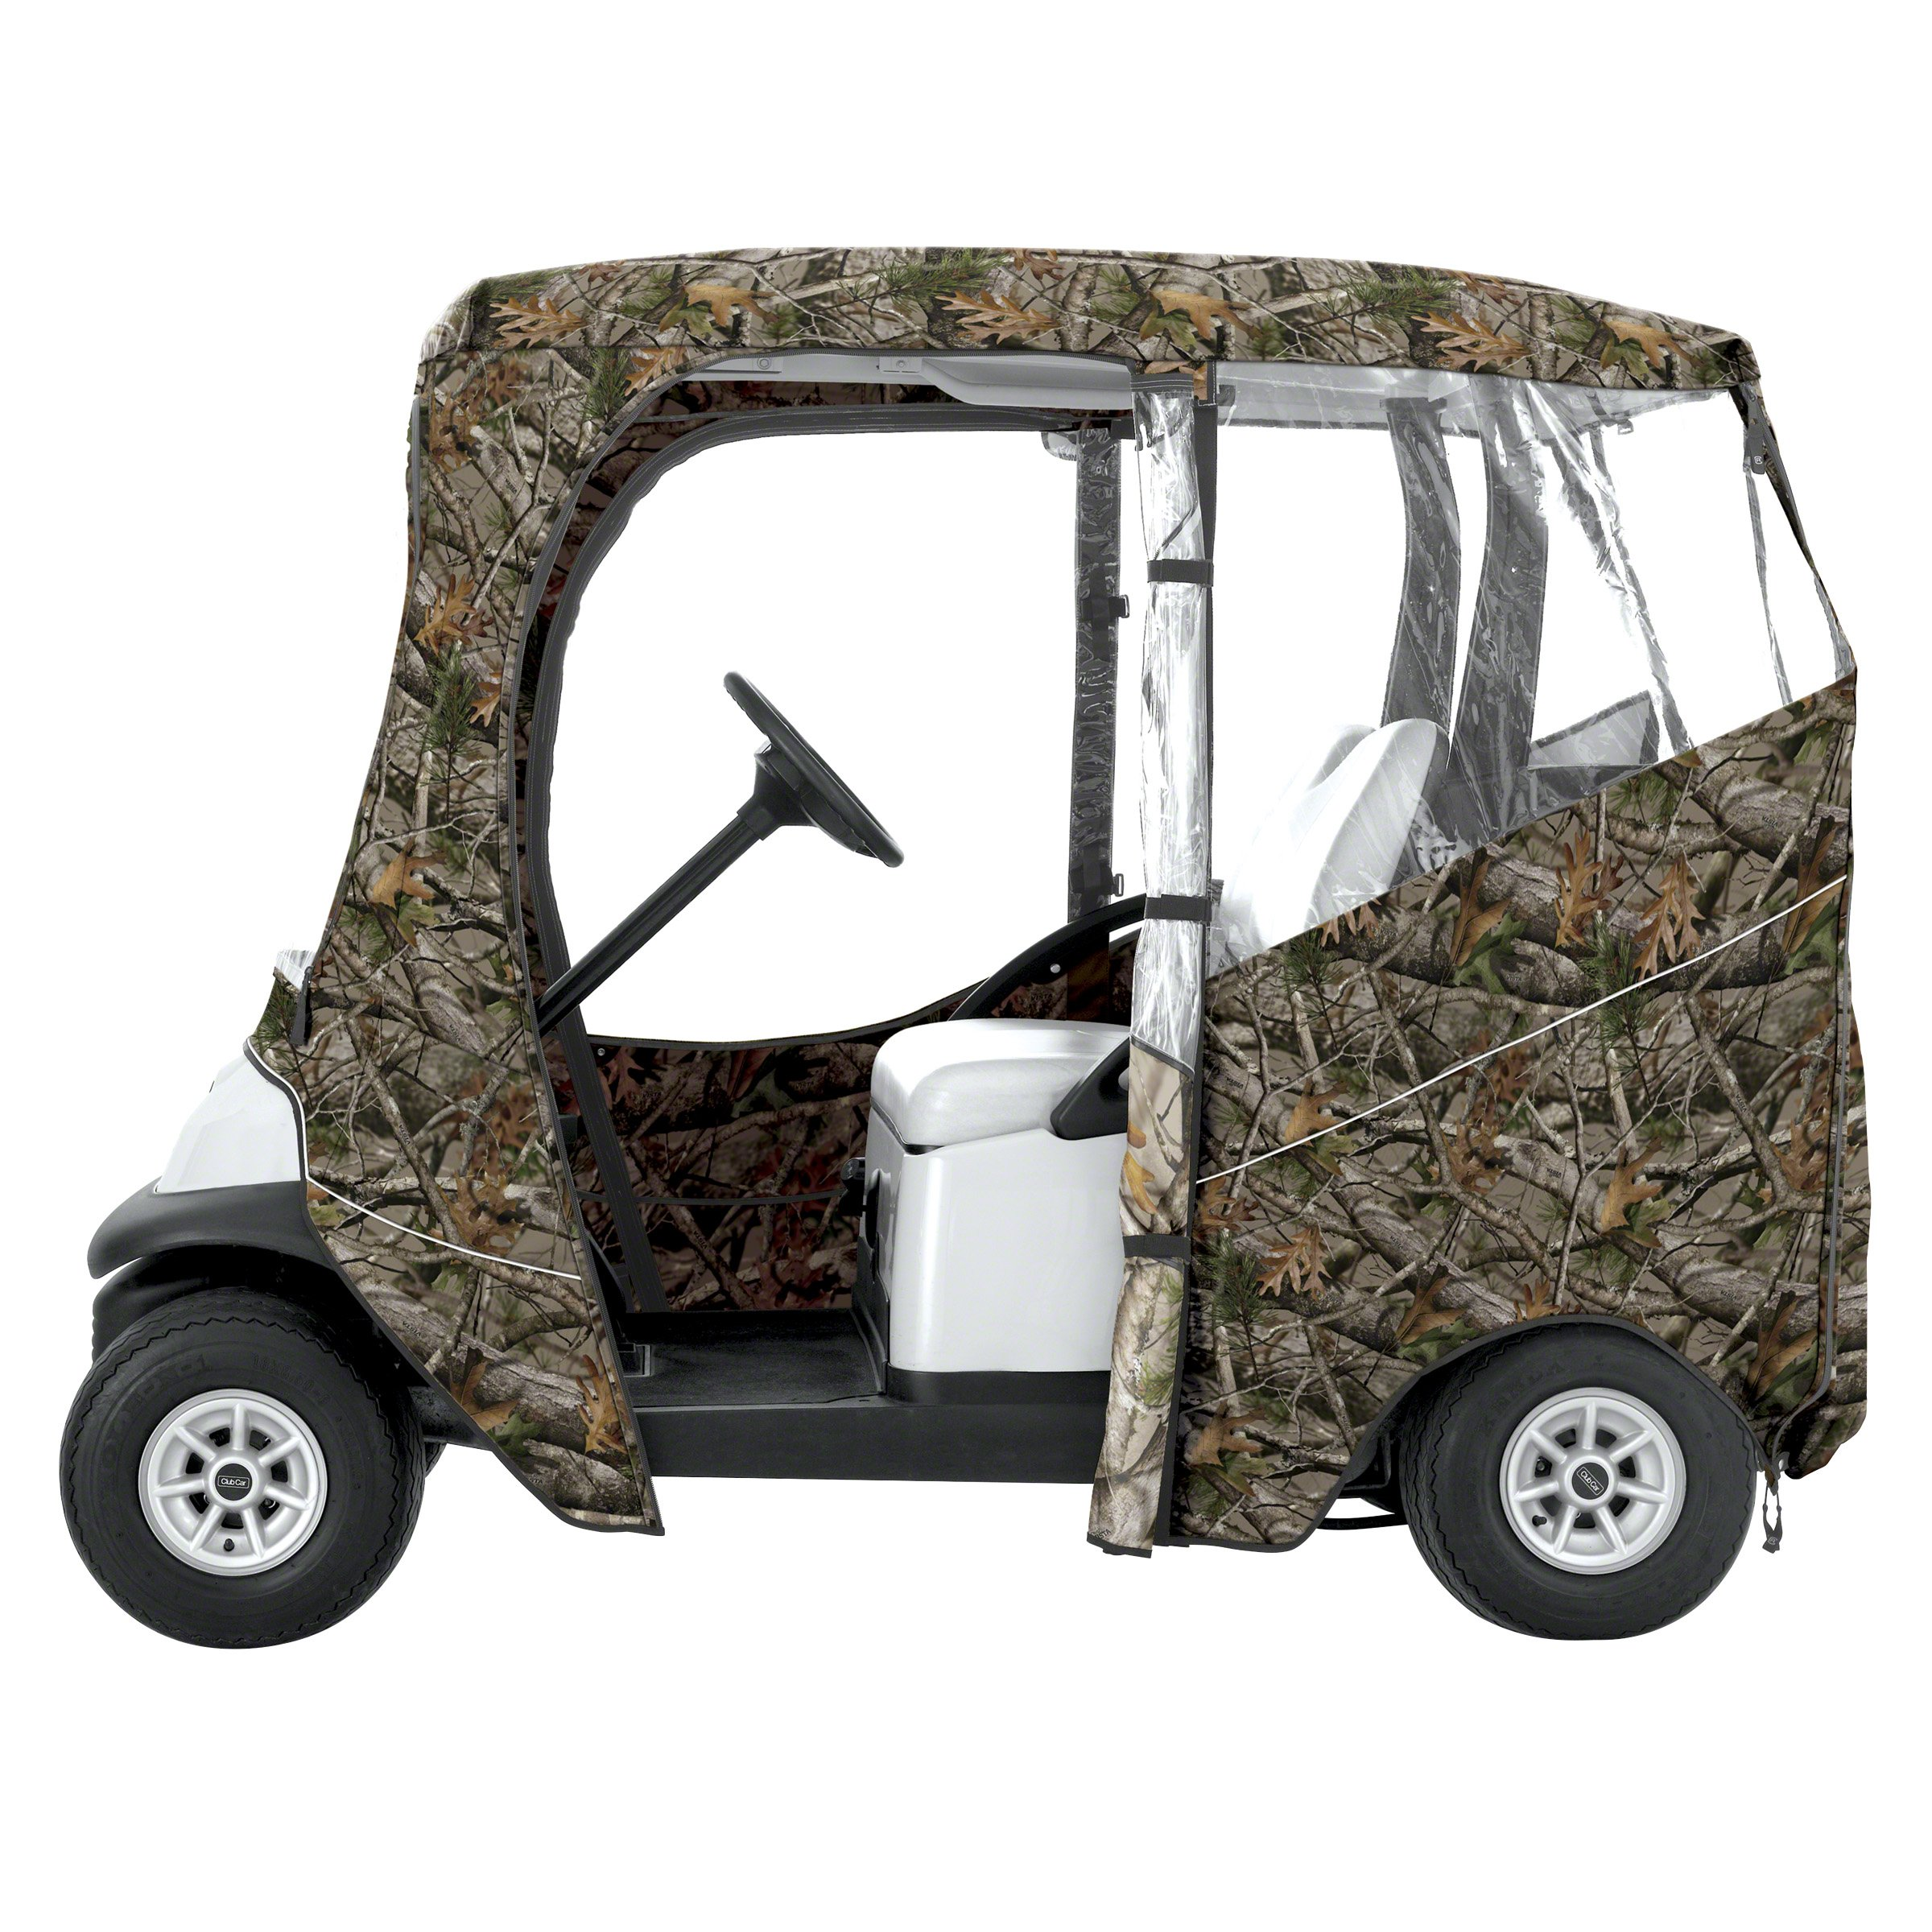 Classic Accessories Fairway Golf Cart Deluxe Enclosure, Camo by Classic Accessories (Image #3)